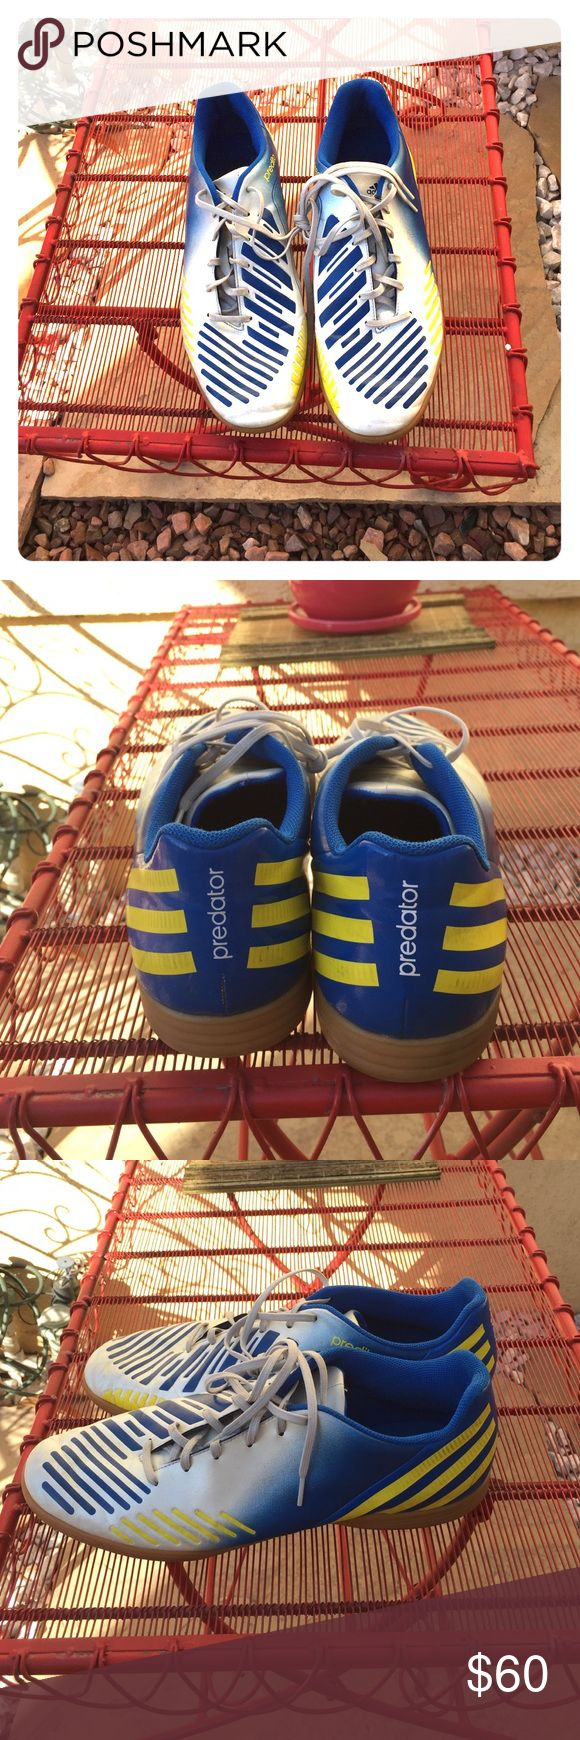 Adidas soccer shoes Adidas predito soccer shoes. Blue/white/yellow. Great condition Adidas Shoes Athletic Shoes